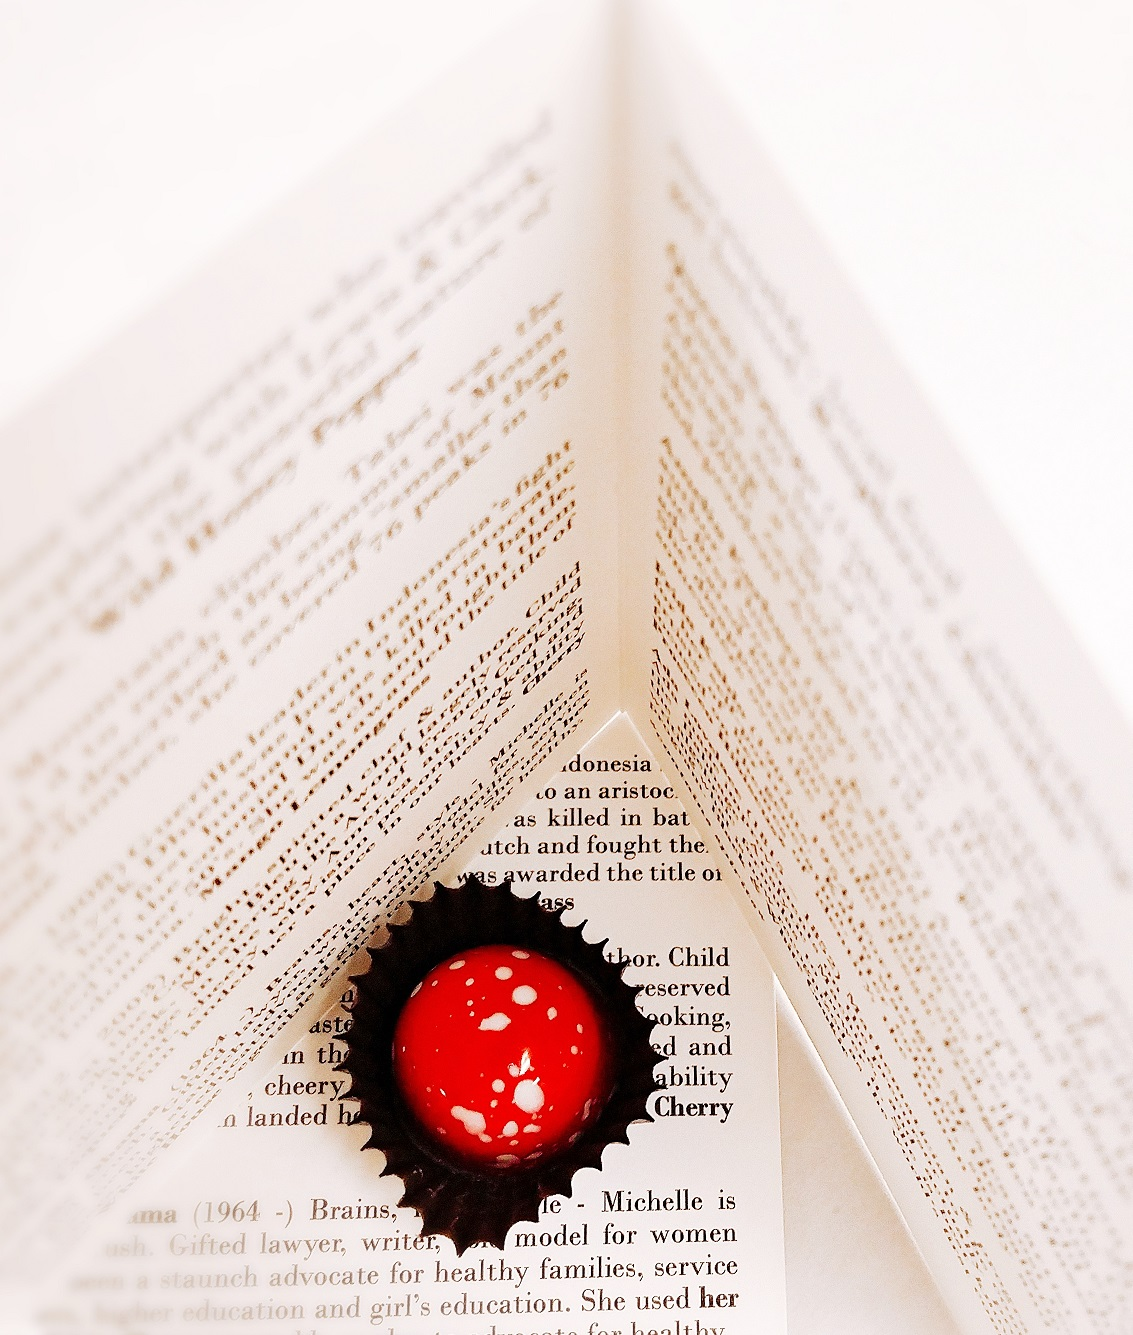 Booklet with red bonbon - resized.jpg